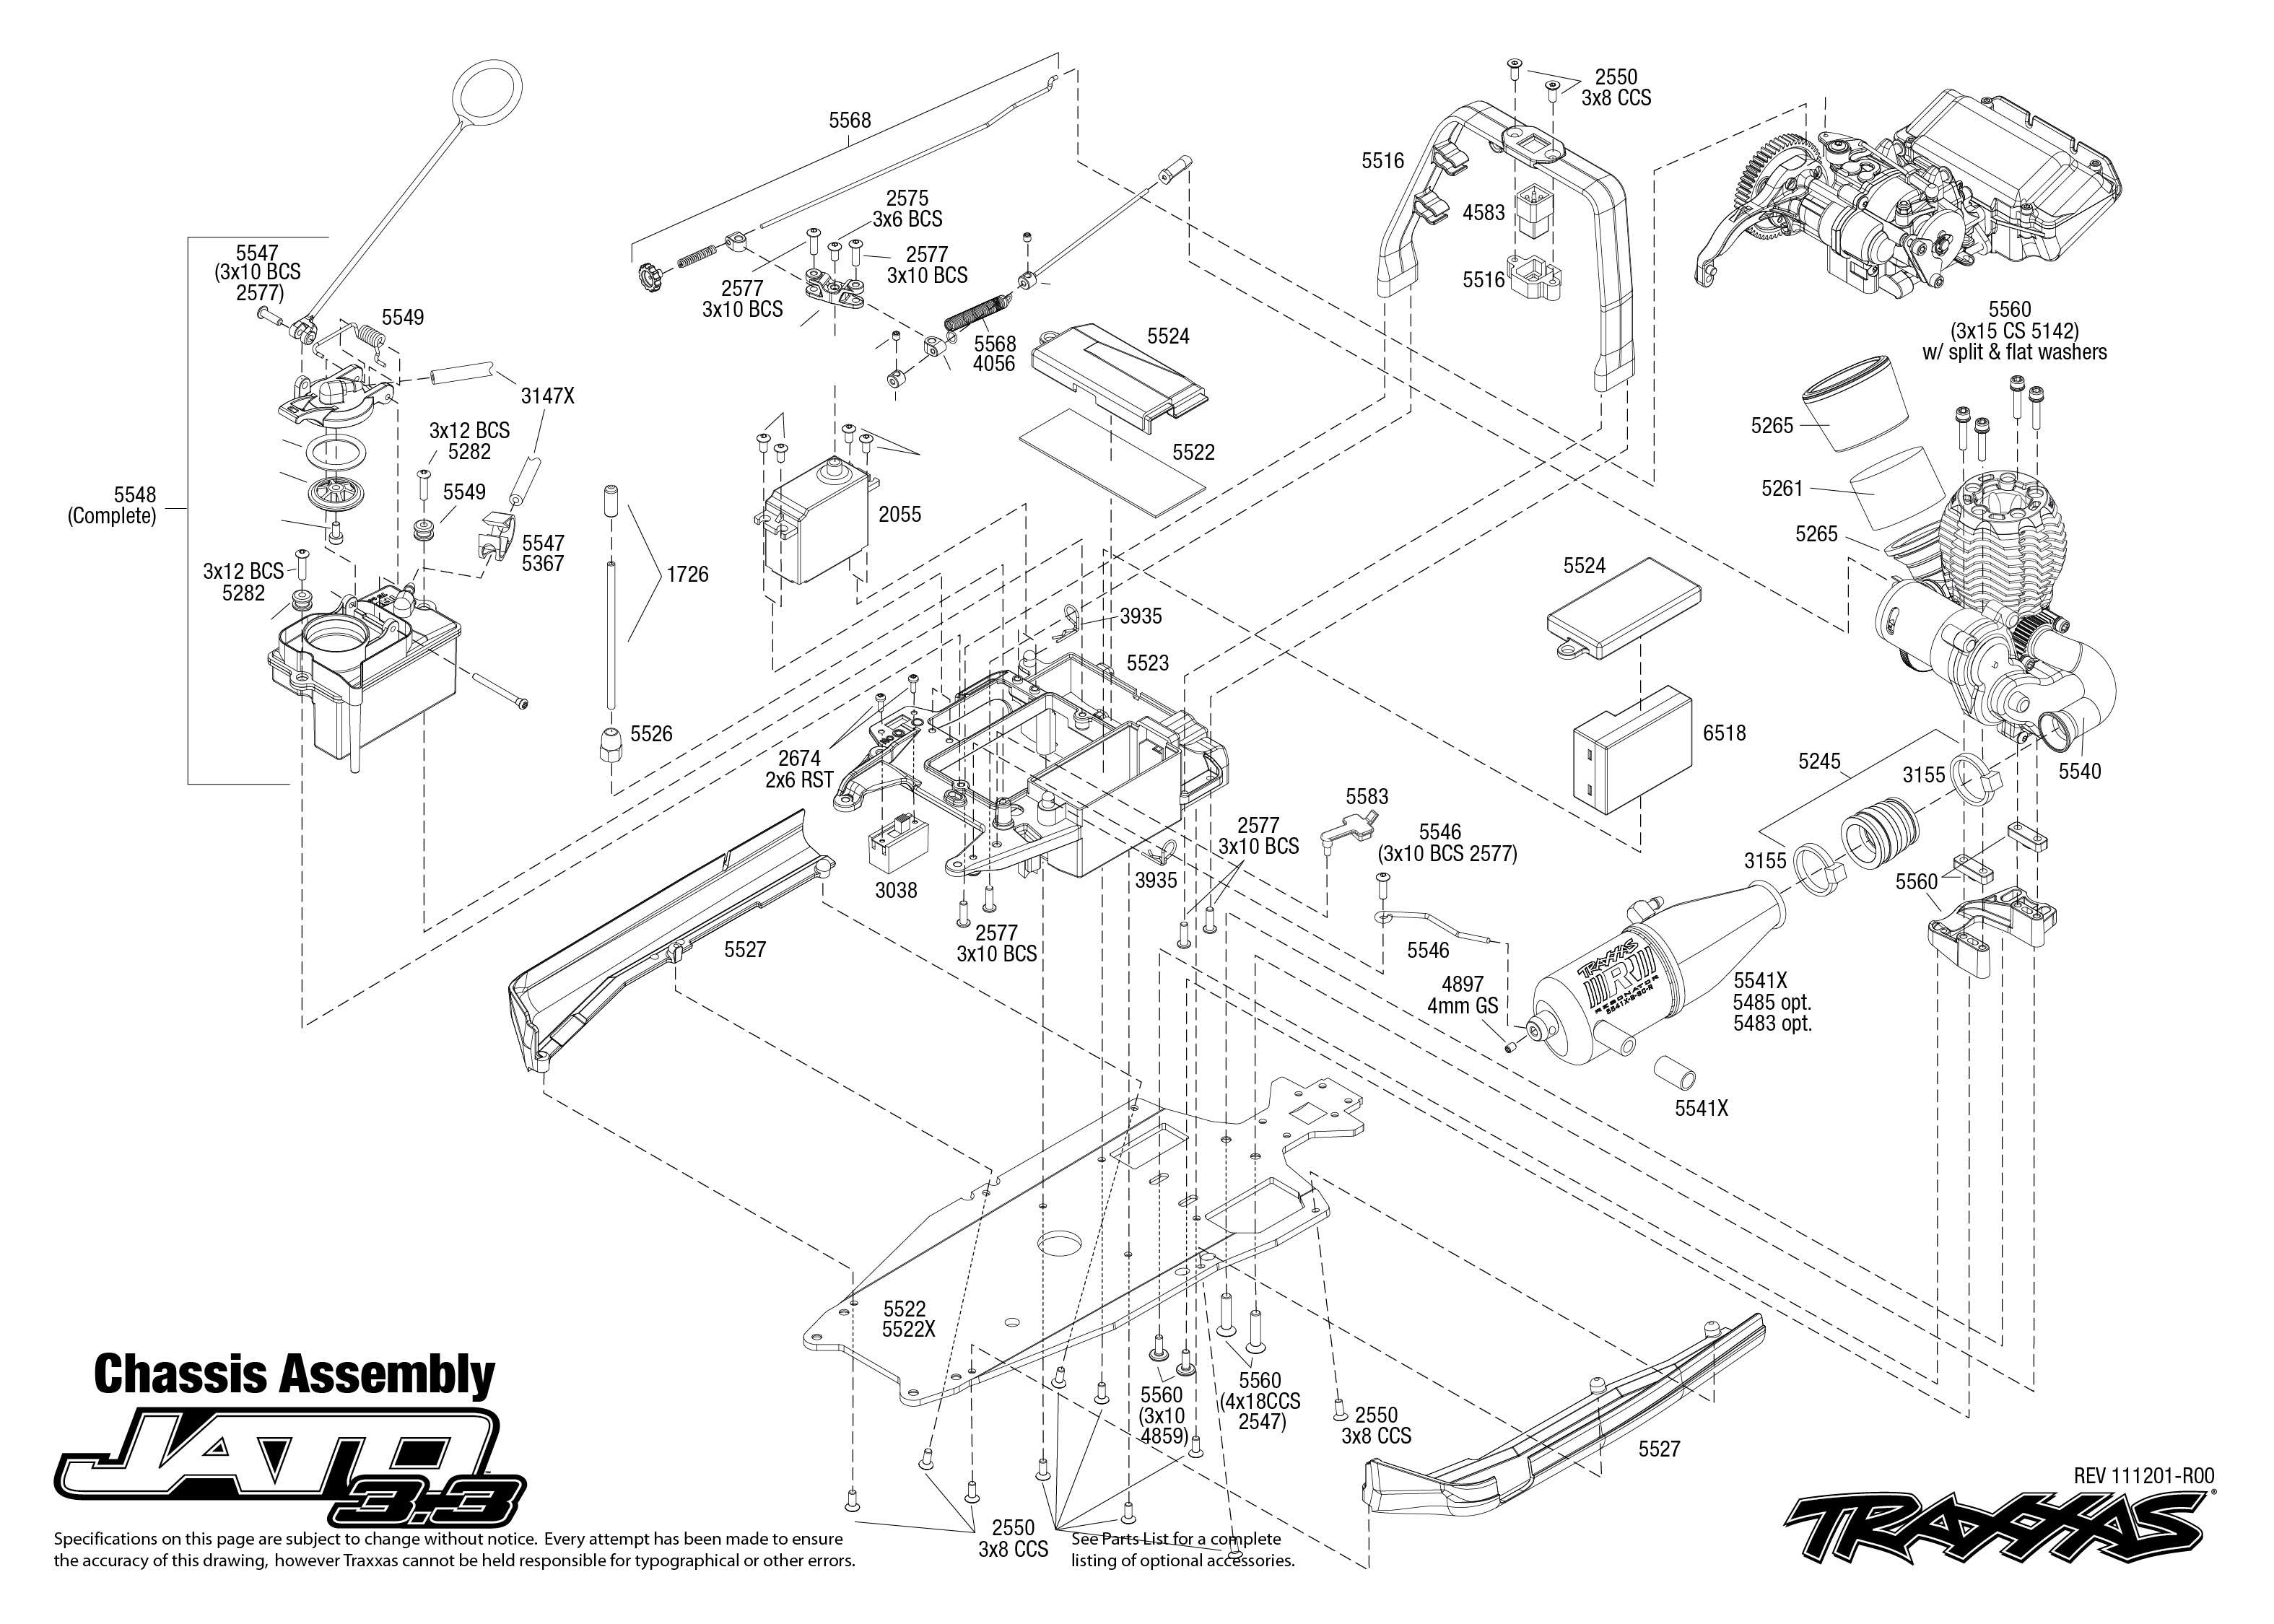 Monster Rally Traxxas Mamba | Wiring Diagram Database on mamba monster esc wires, mamba monster ecu got wet, mamba max pro wiring diagram, mamba monster wiring dia, mamba monster series diagram,